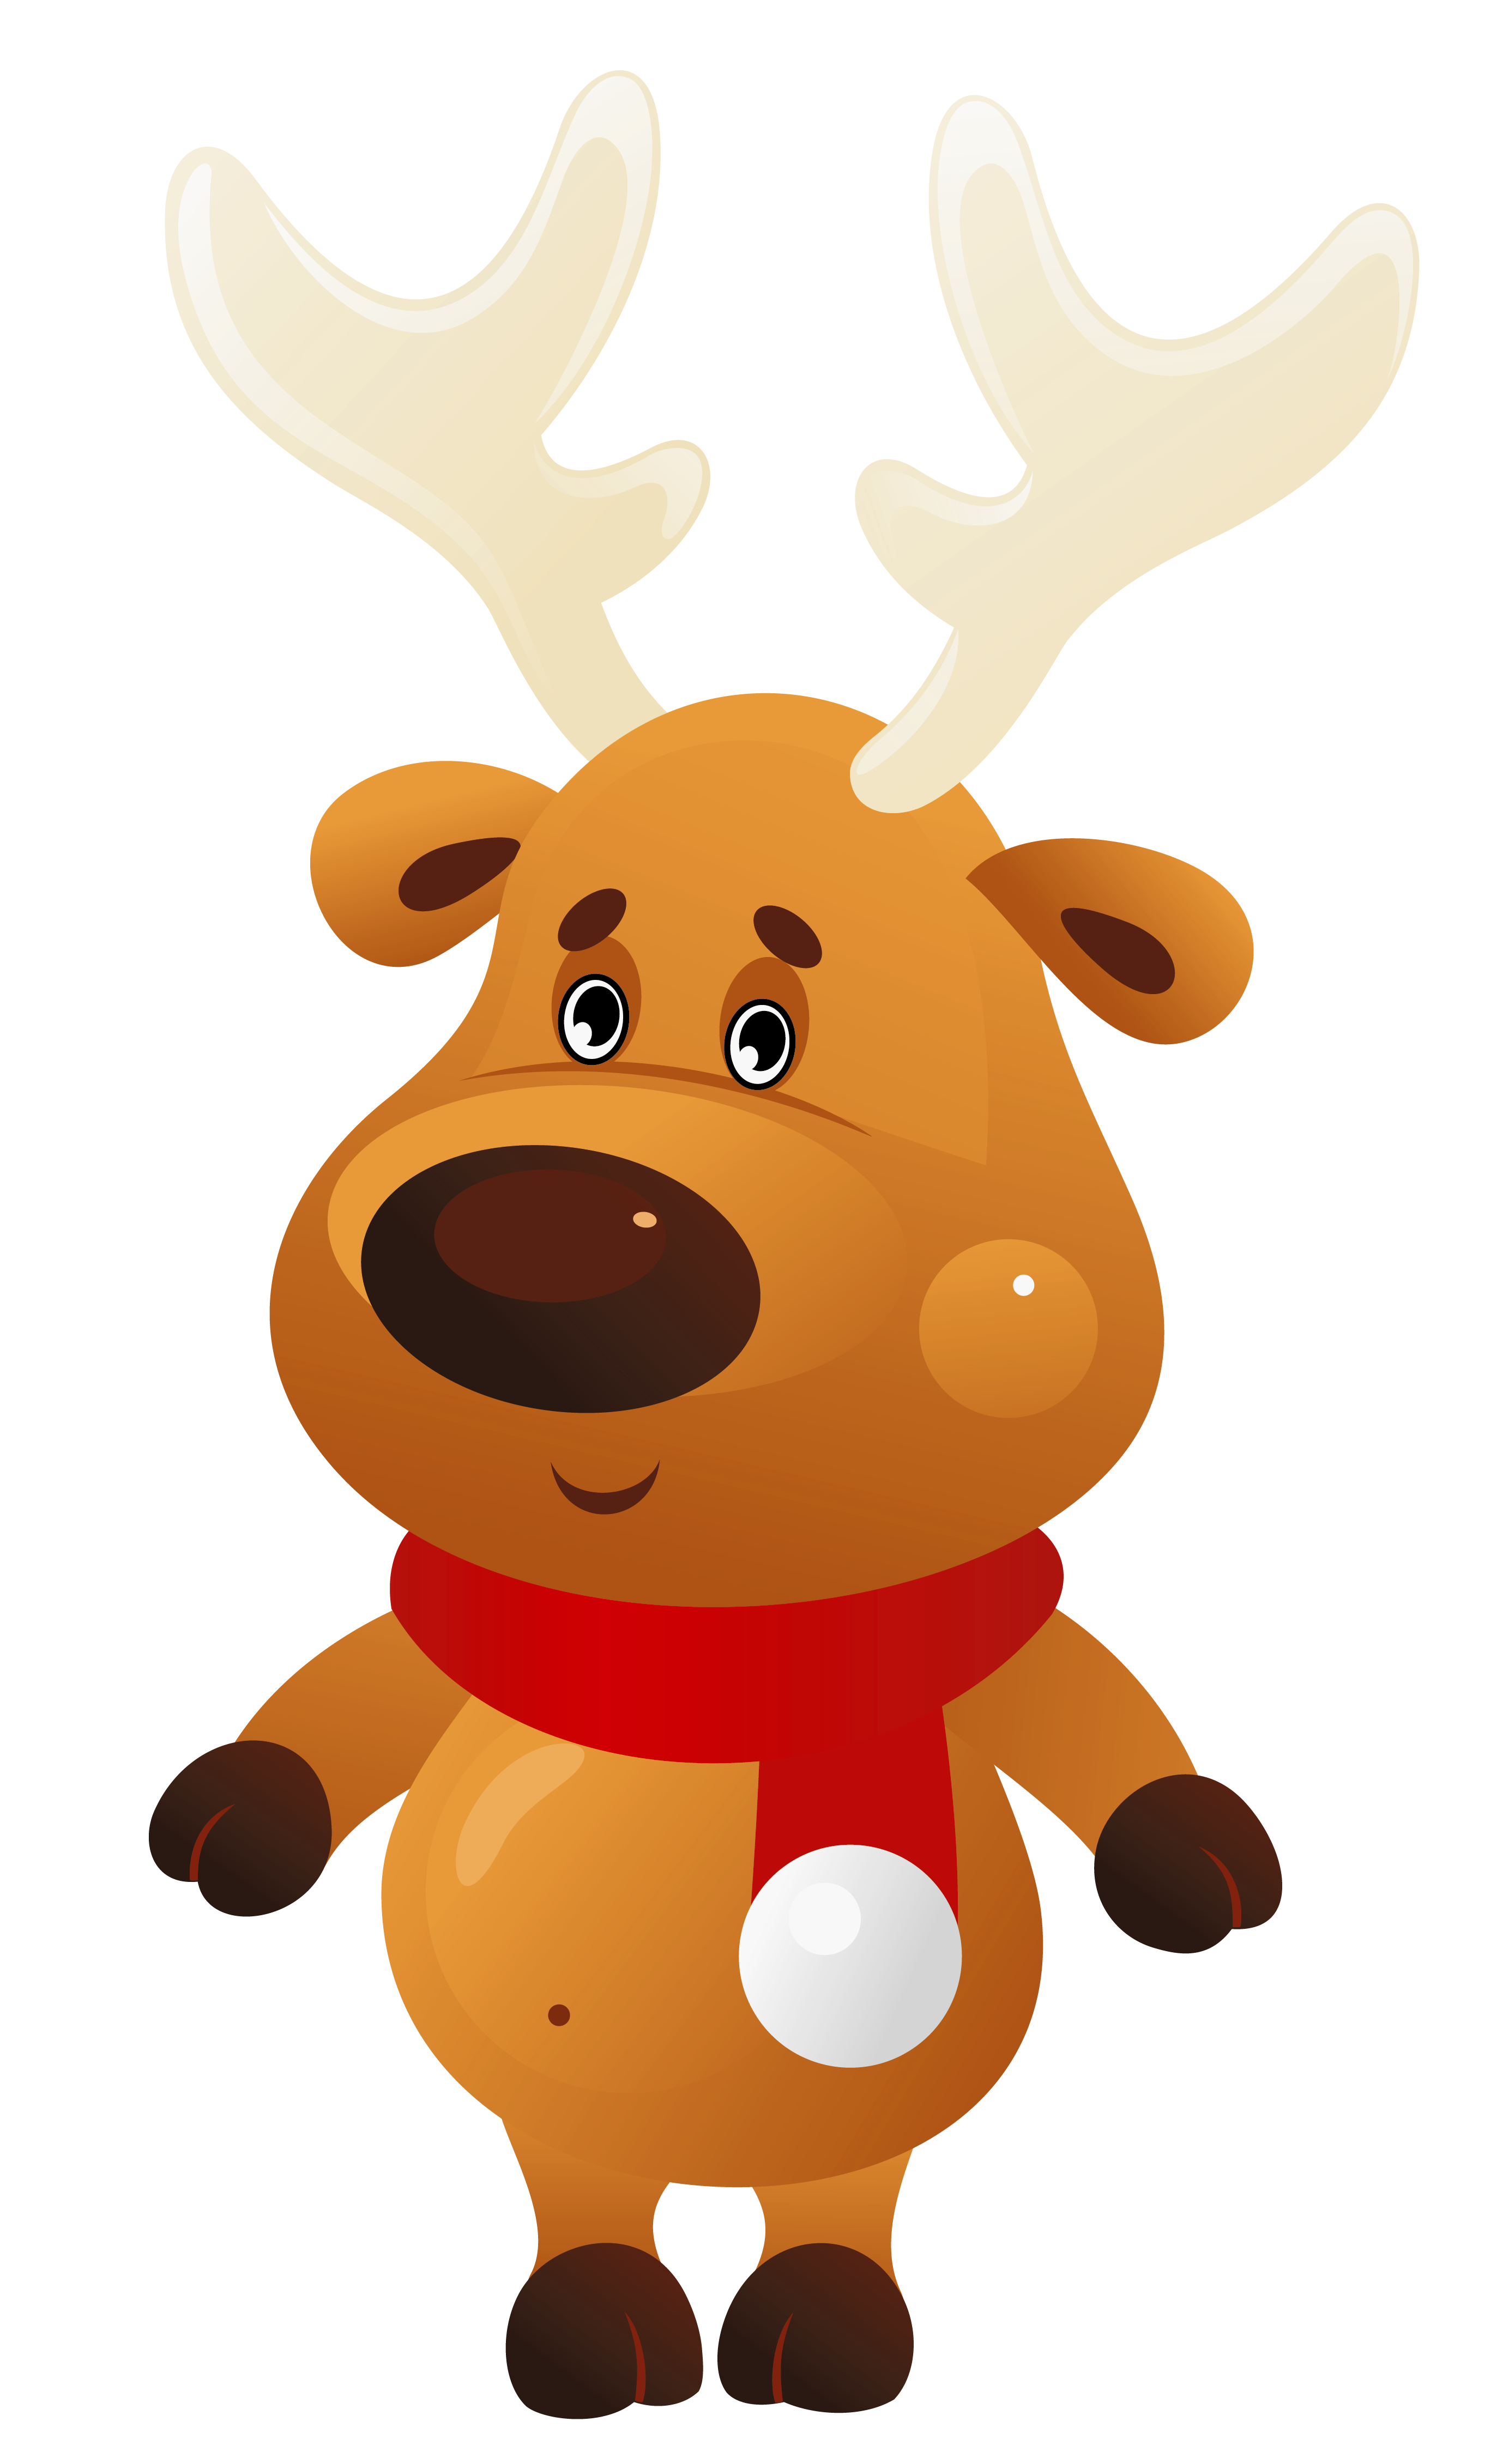 Reindeer clipart png. Christmas group cute with